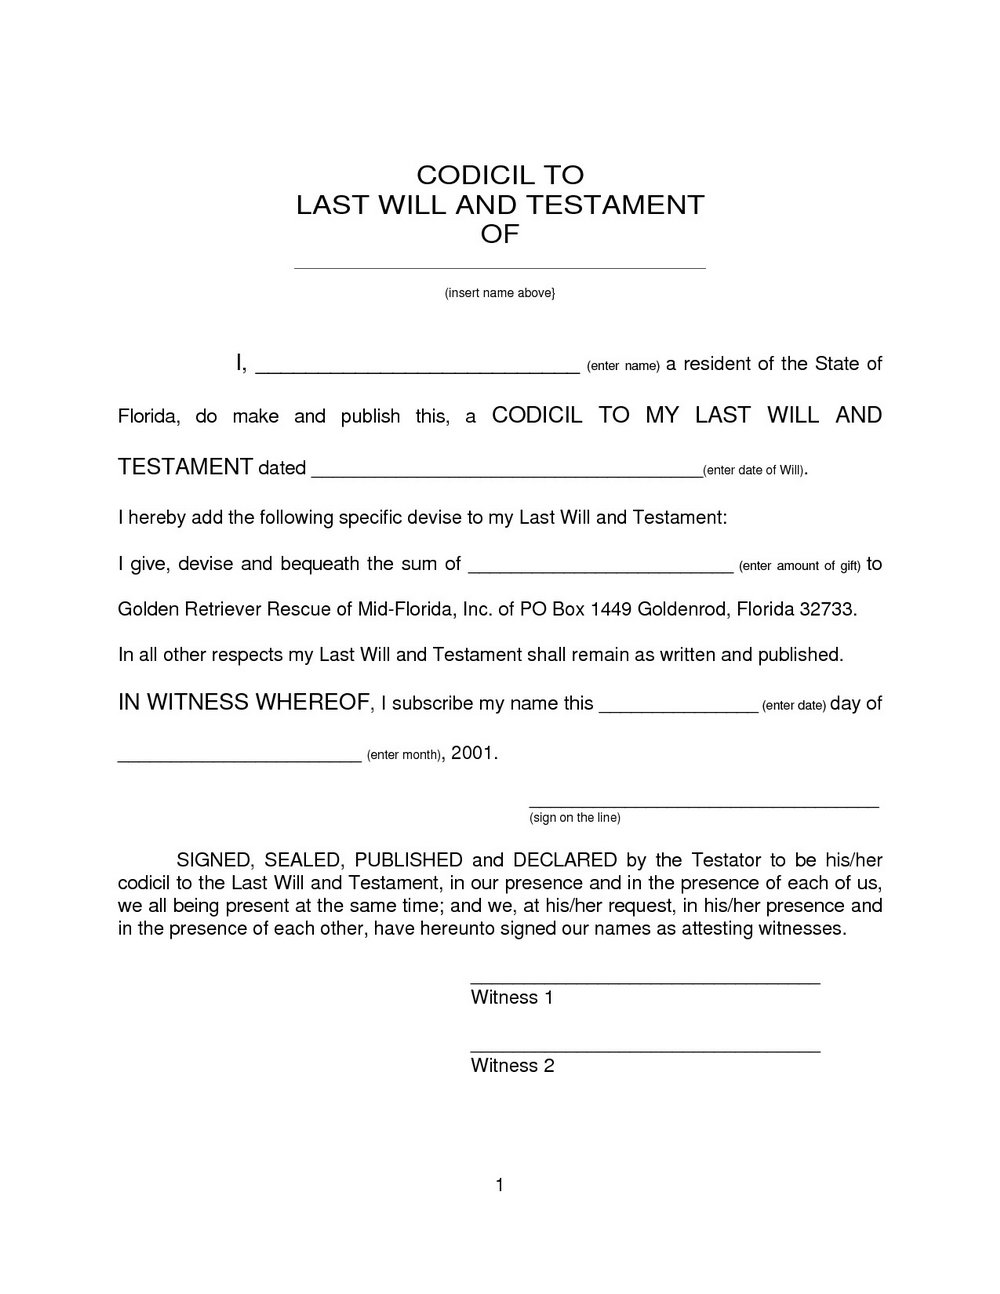 image relating to Free Printable Last Will and Testament Blank Forms referred to as Cost-free Printable Ultimate Will And Testomony Blank Sorts - Varieties